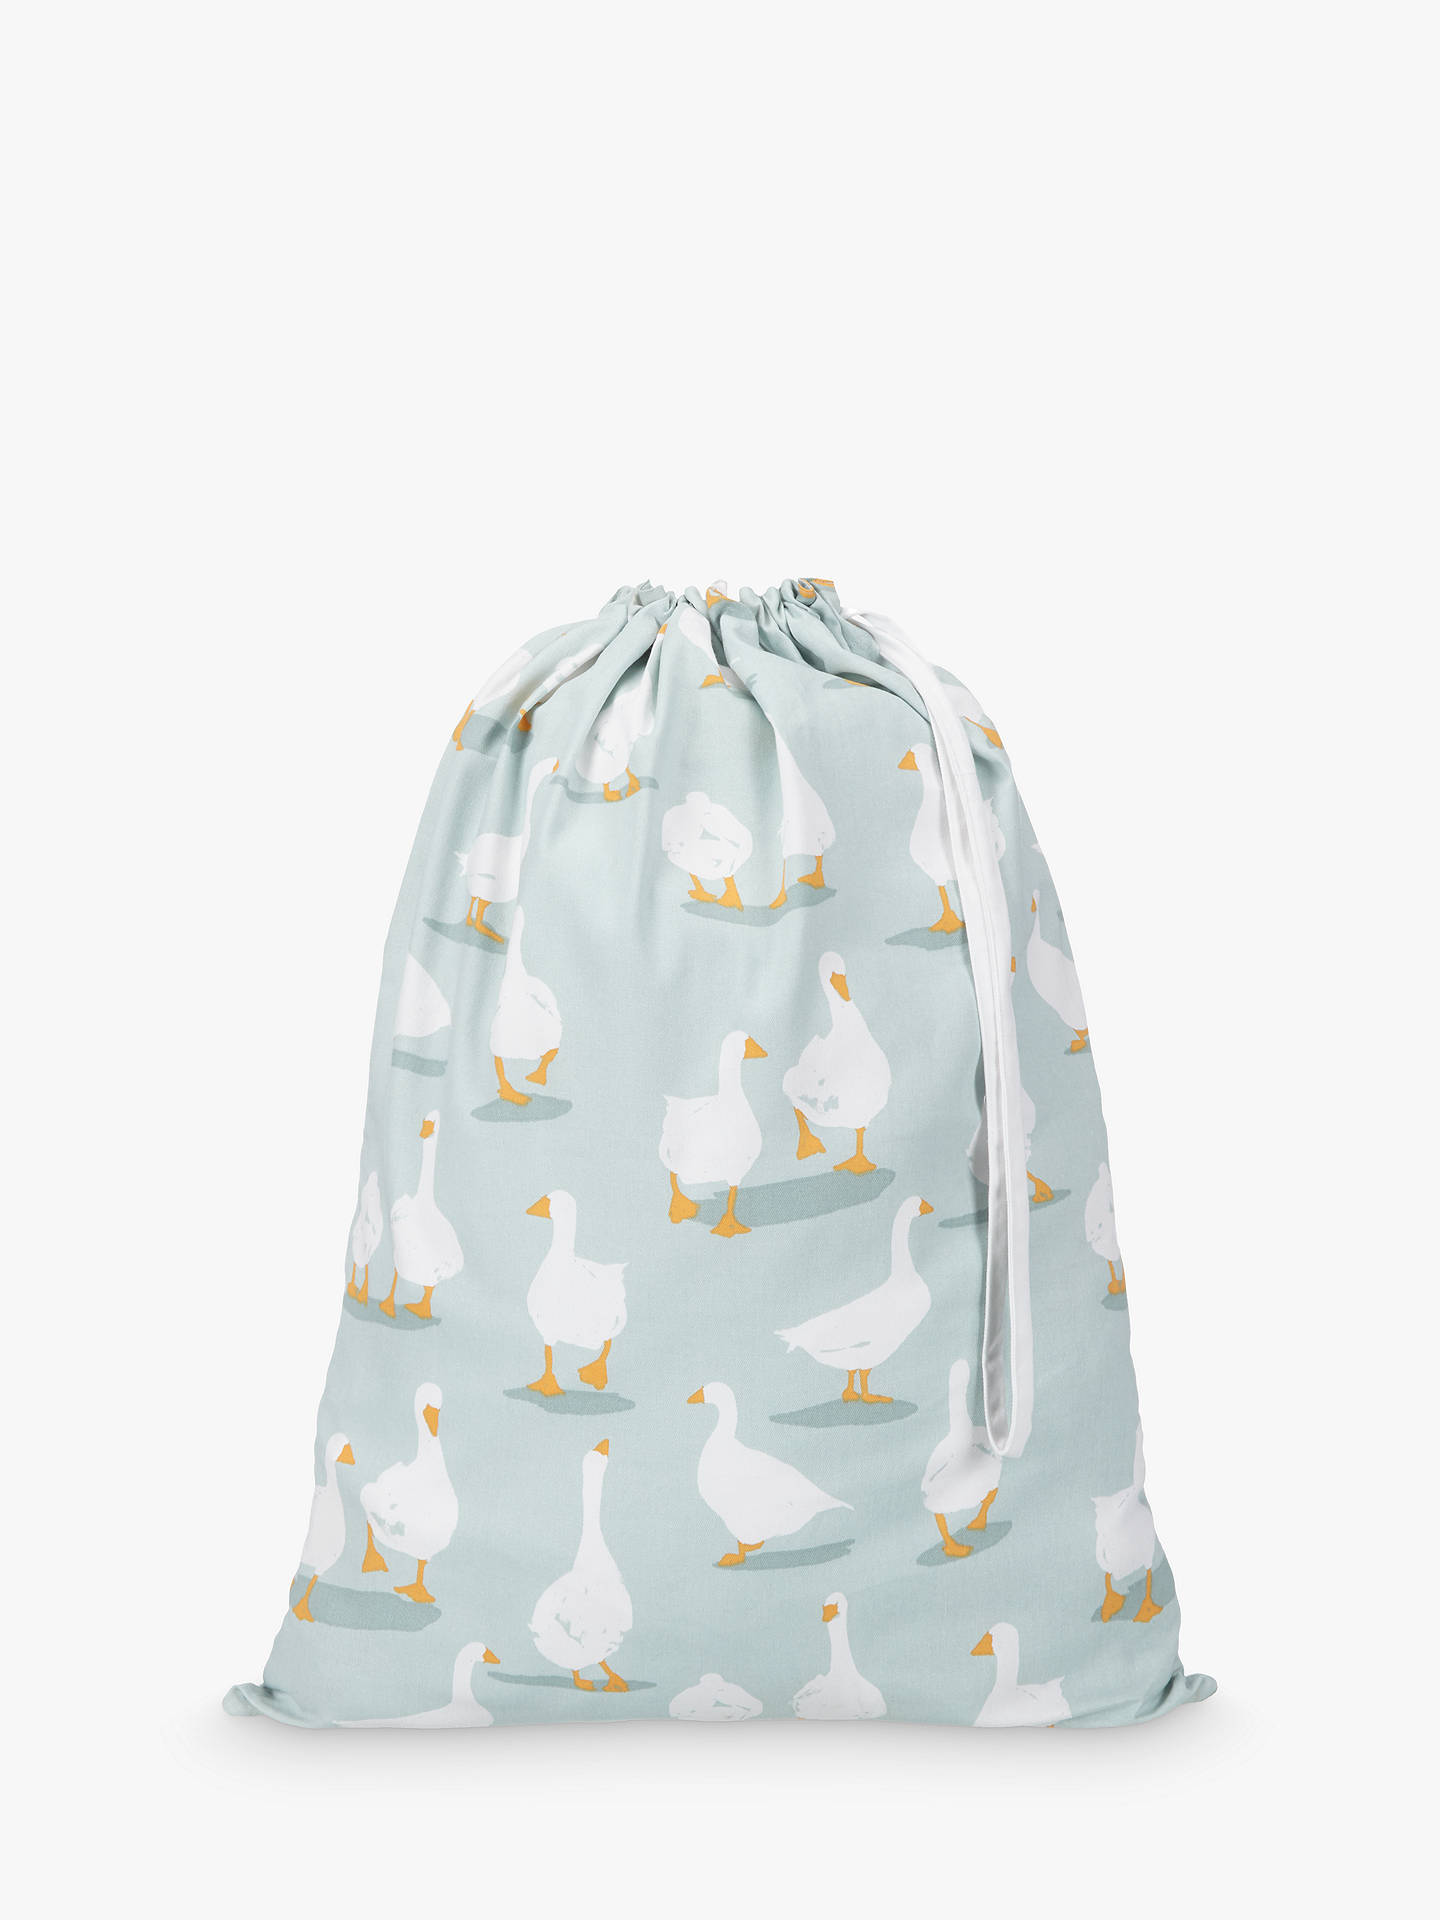 BuyJohn Lewis & Partners Geese Laundry Bag Online at johnlewis.com